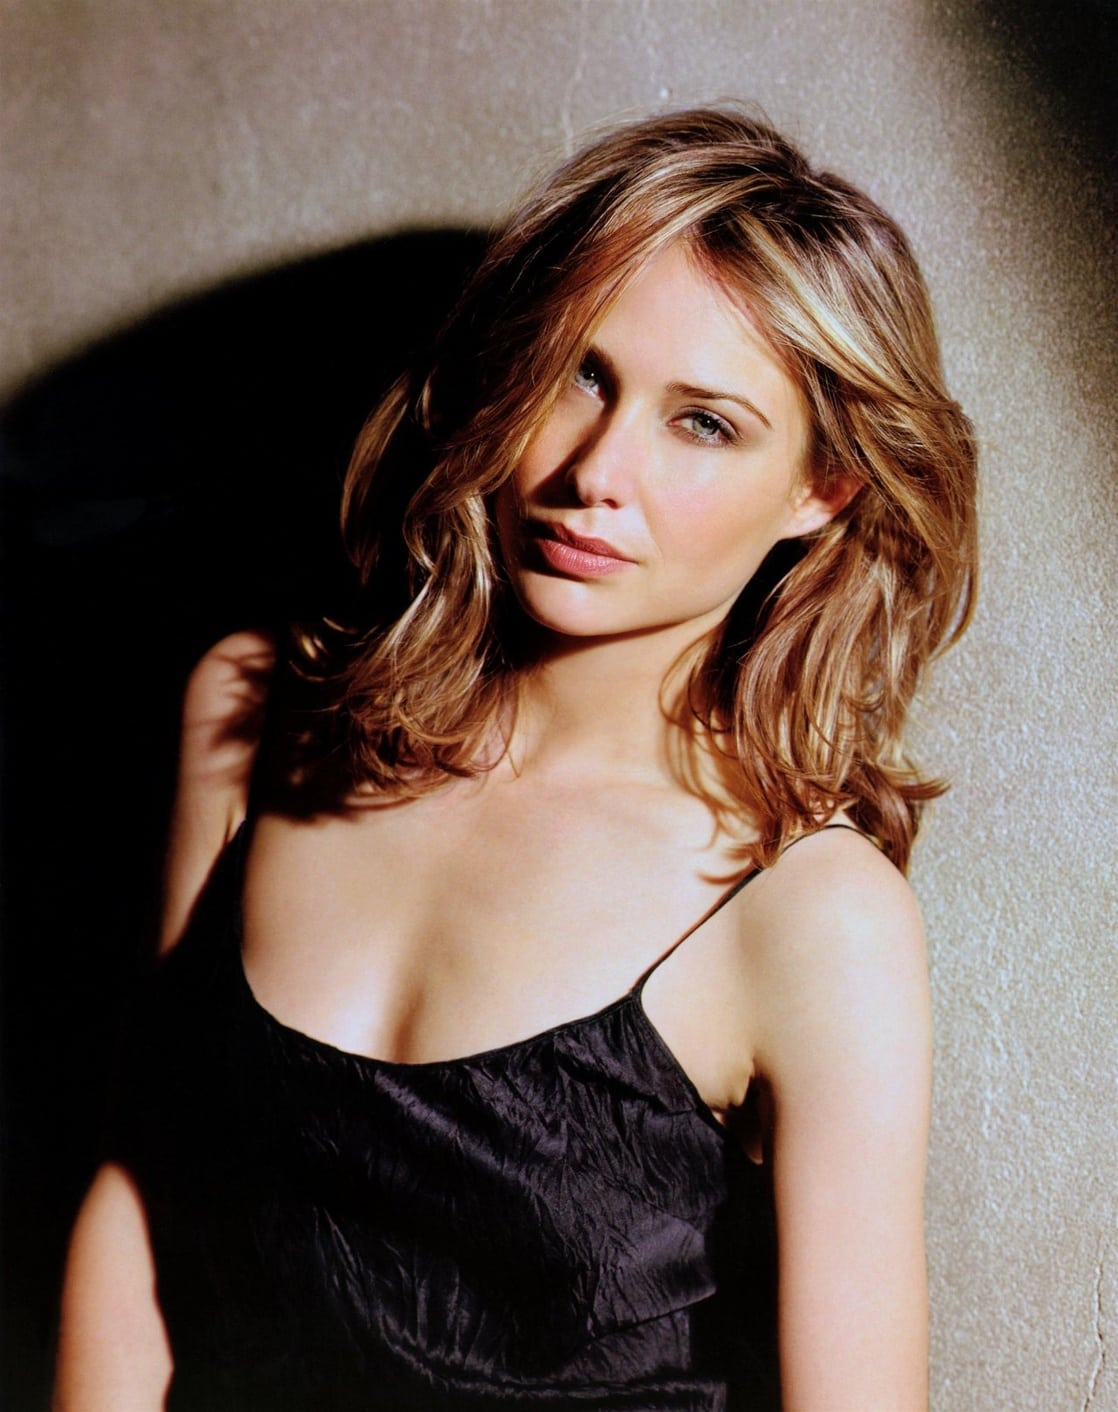 Nude photos of claire forlani